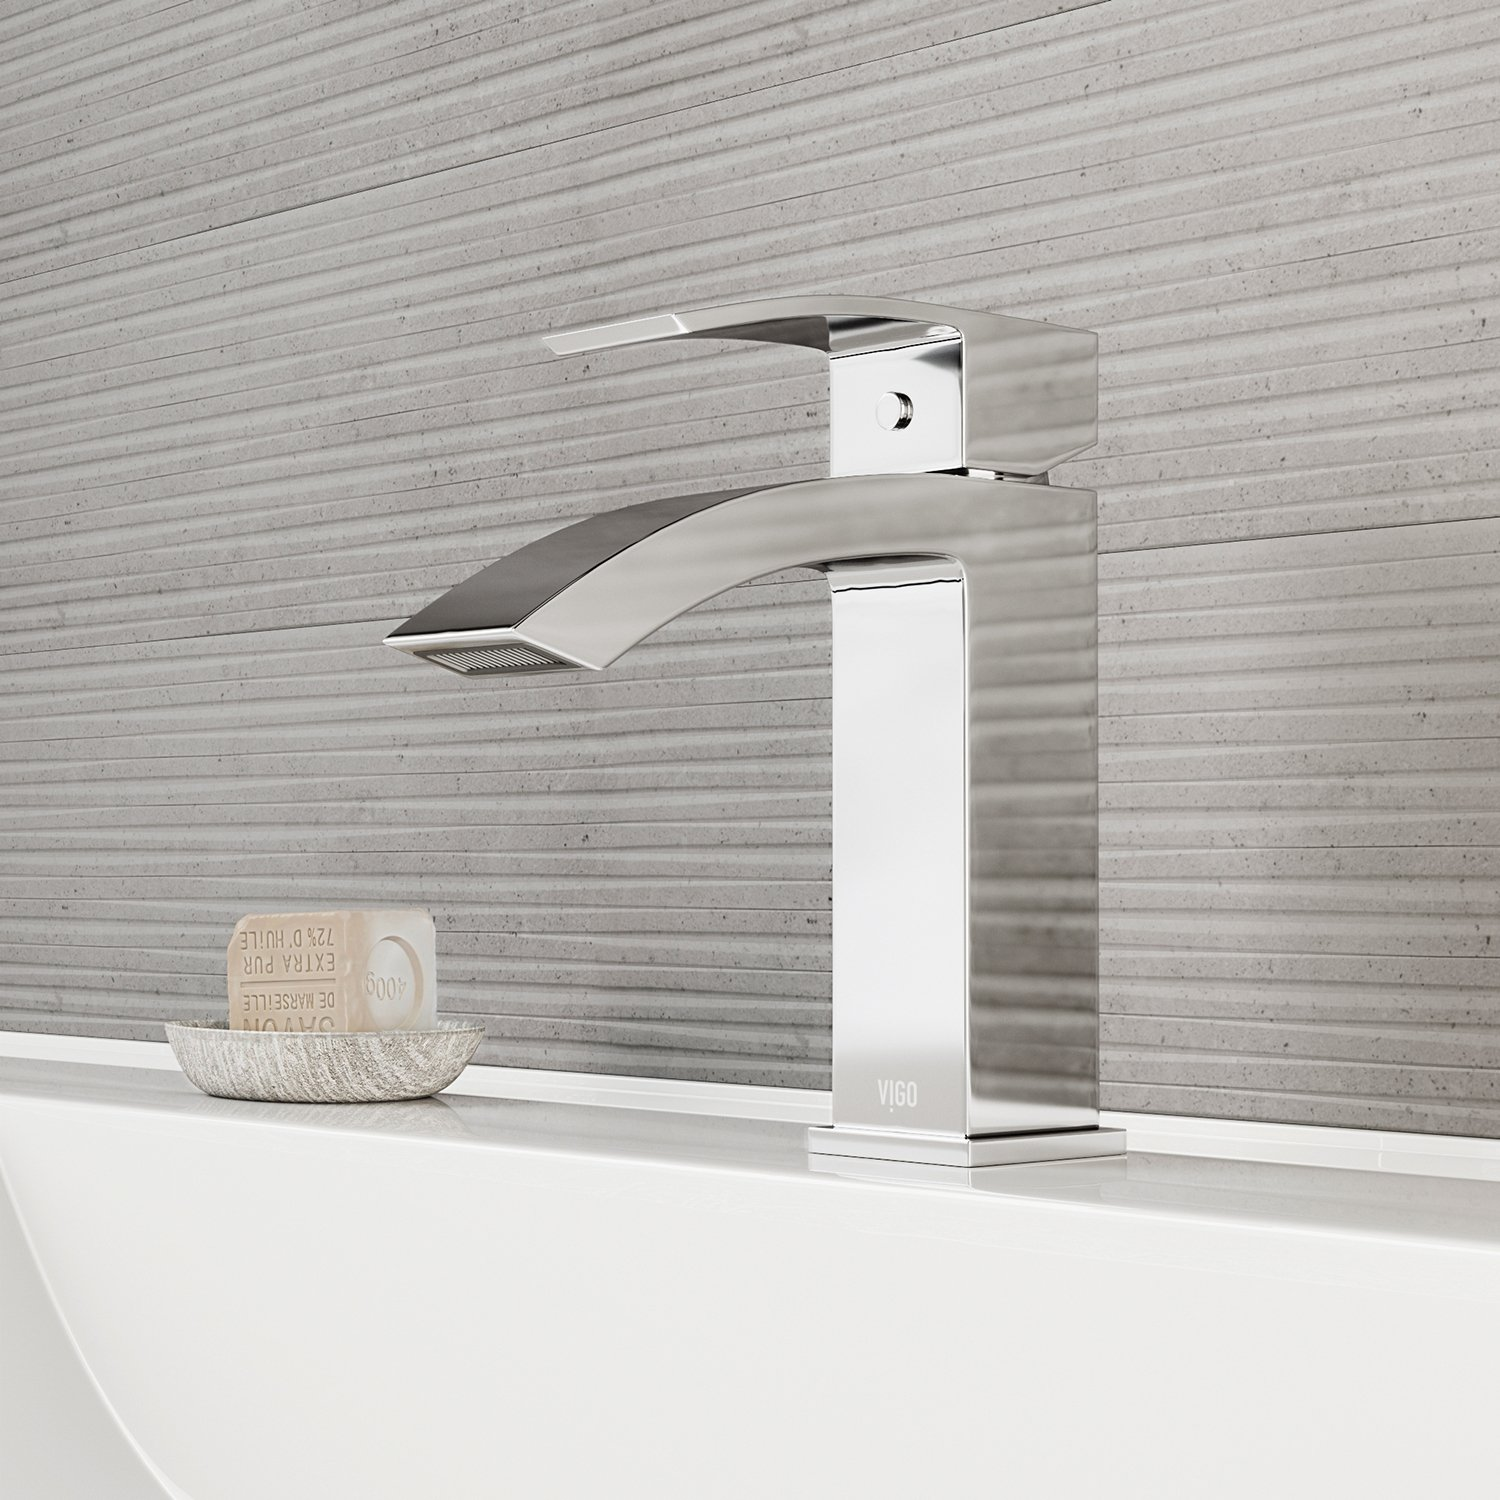 Merveilleux Amazon.com: VIGO VG01015CH Satro Modern Bathroom Faucet, Single Hole  Deck Mount Lavatory Faucet With Plated Seven Layer Polished Chrome Finish:  Home ...